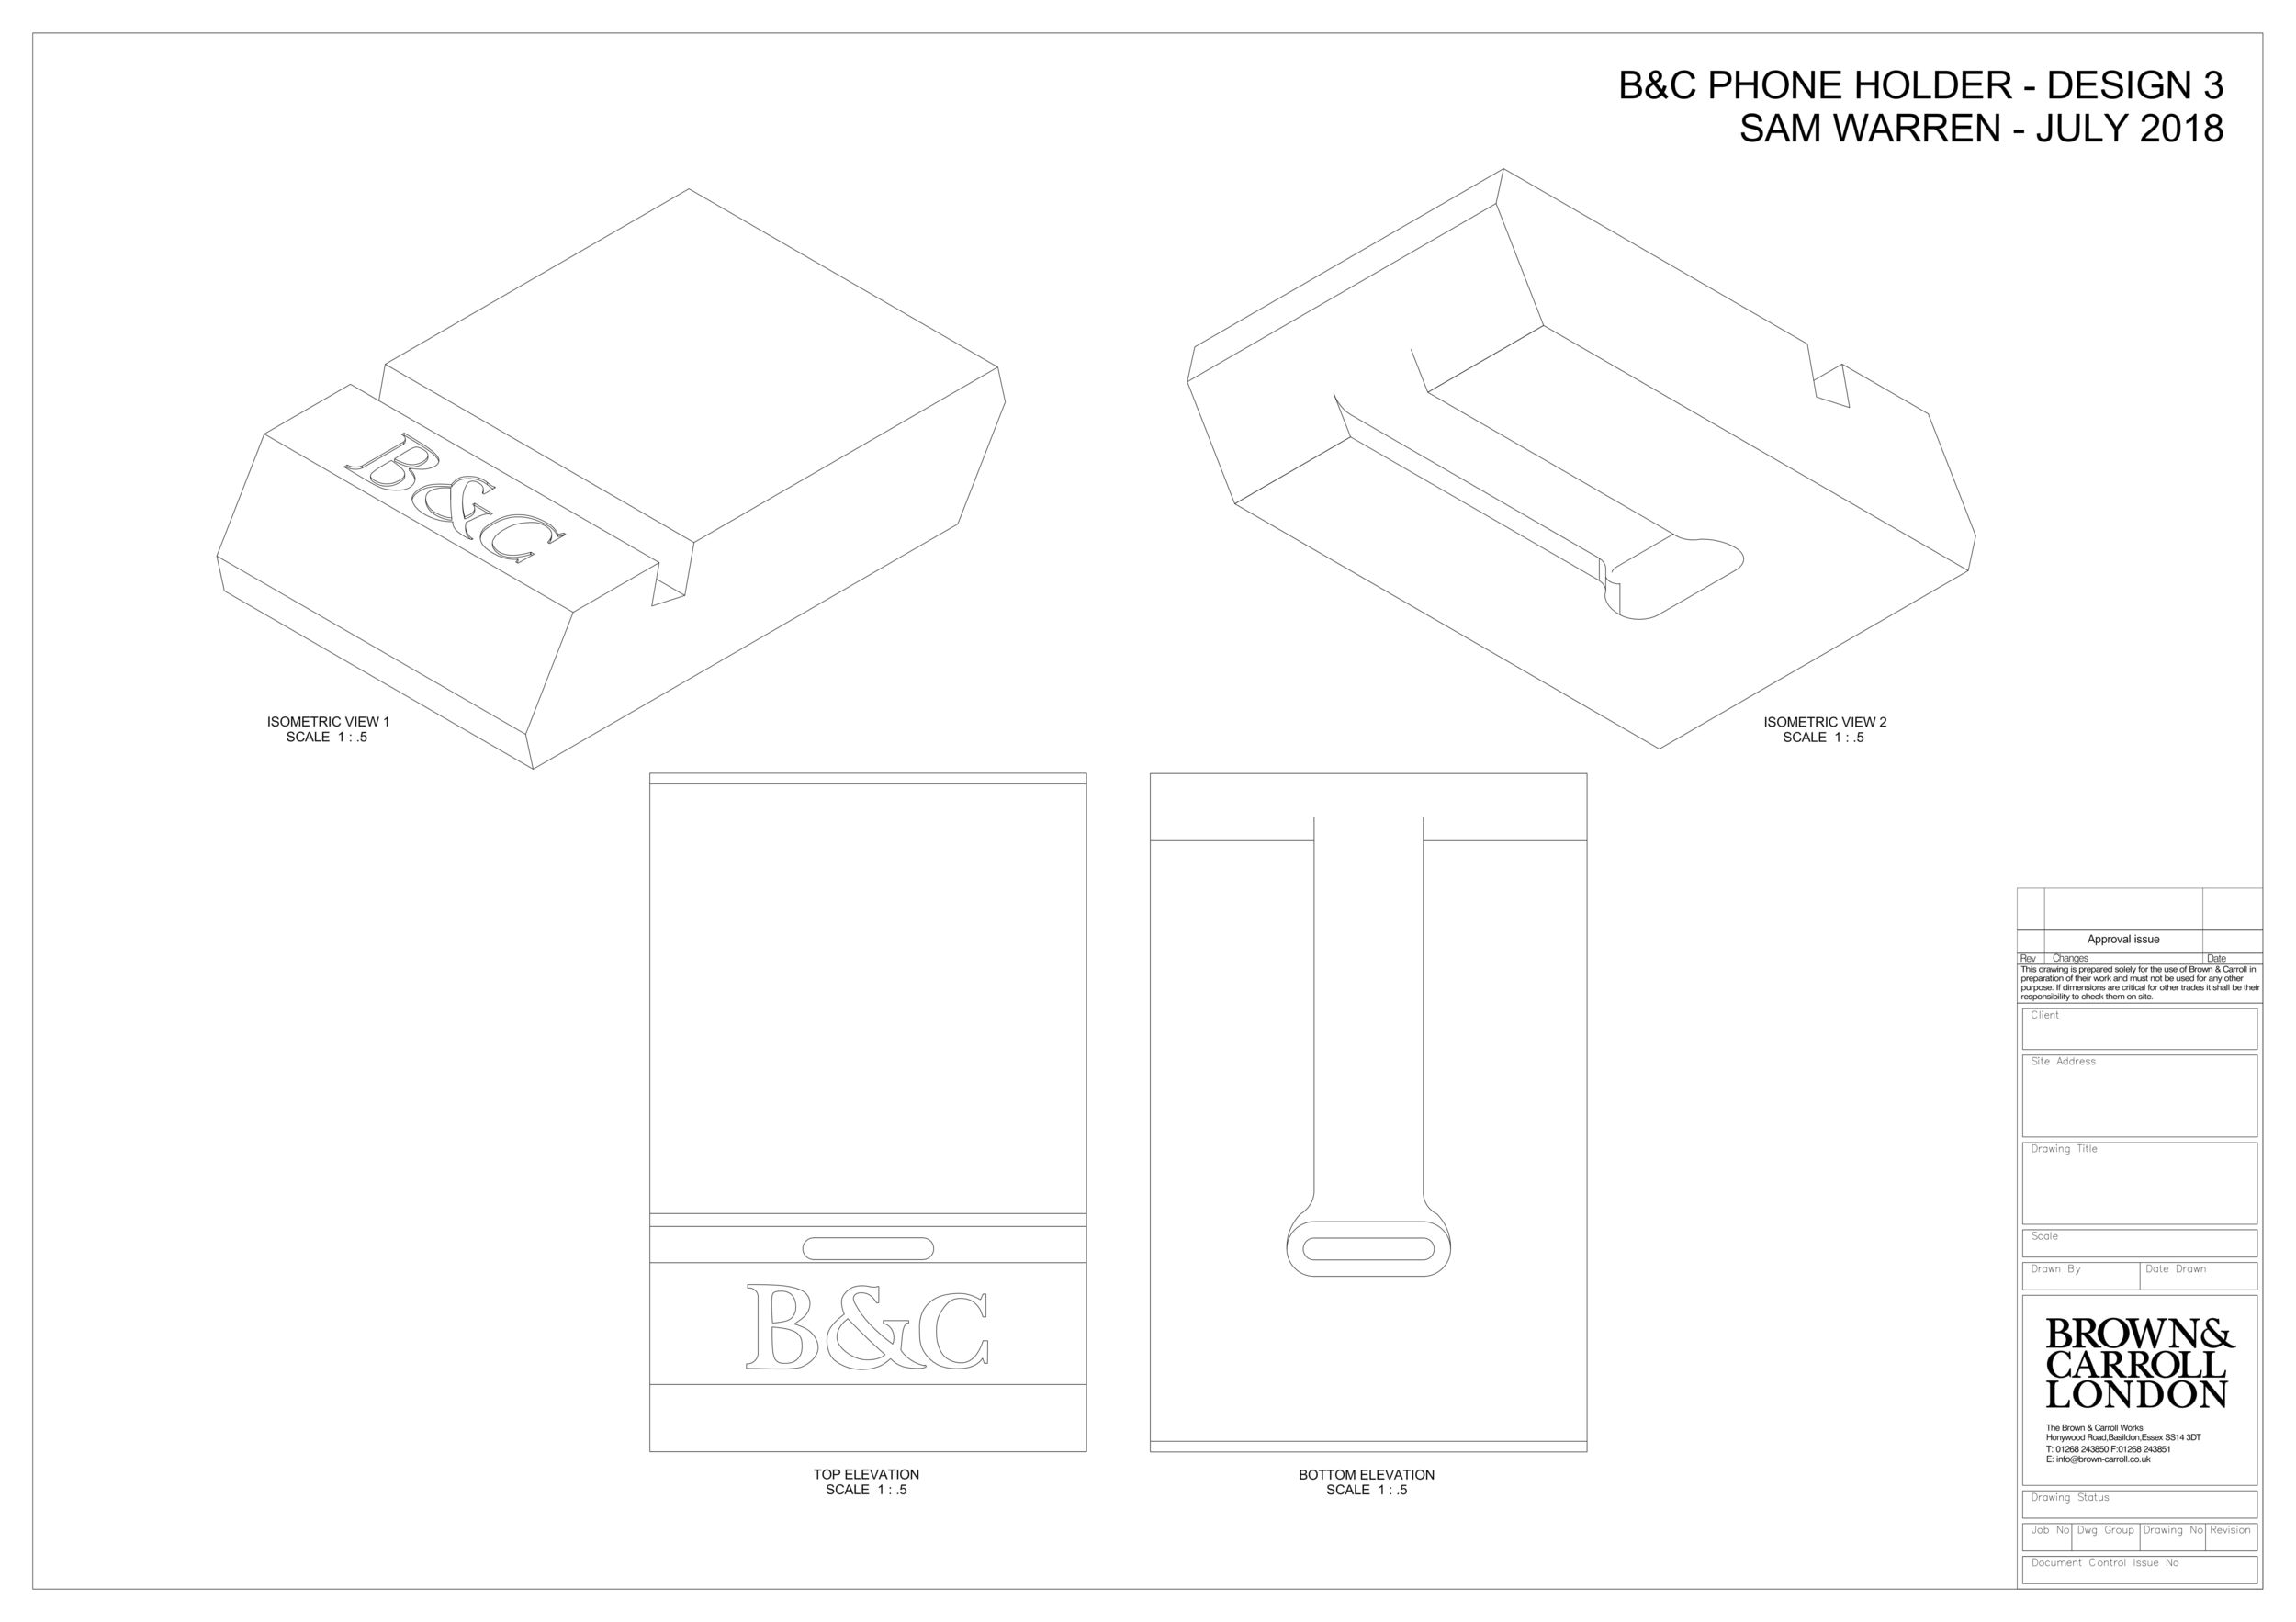 phone holder 3 - drawing-1.png